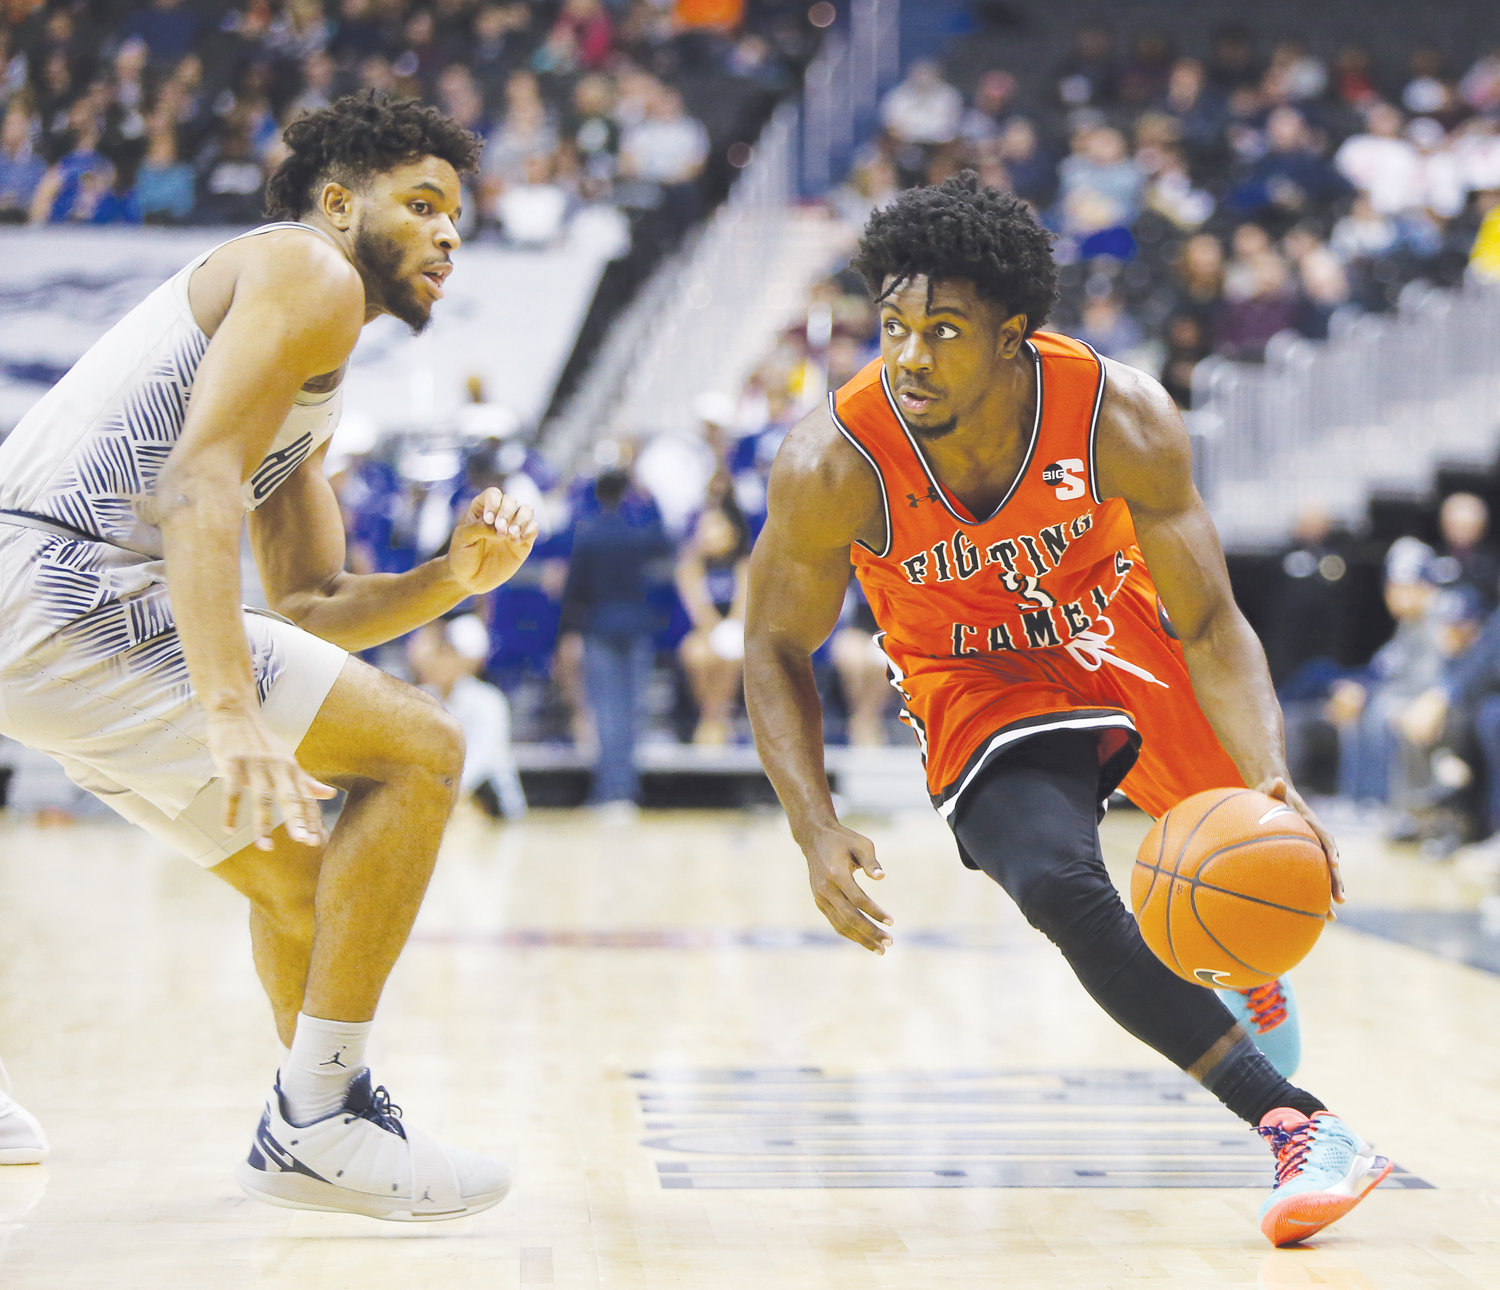 947dfe7c301 Campbell falls at Georgetown 93-85 despite Clemons' 45-point outburst | The  Daily Record